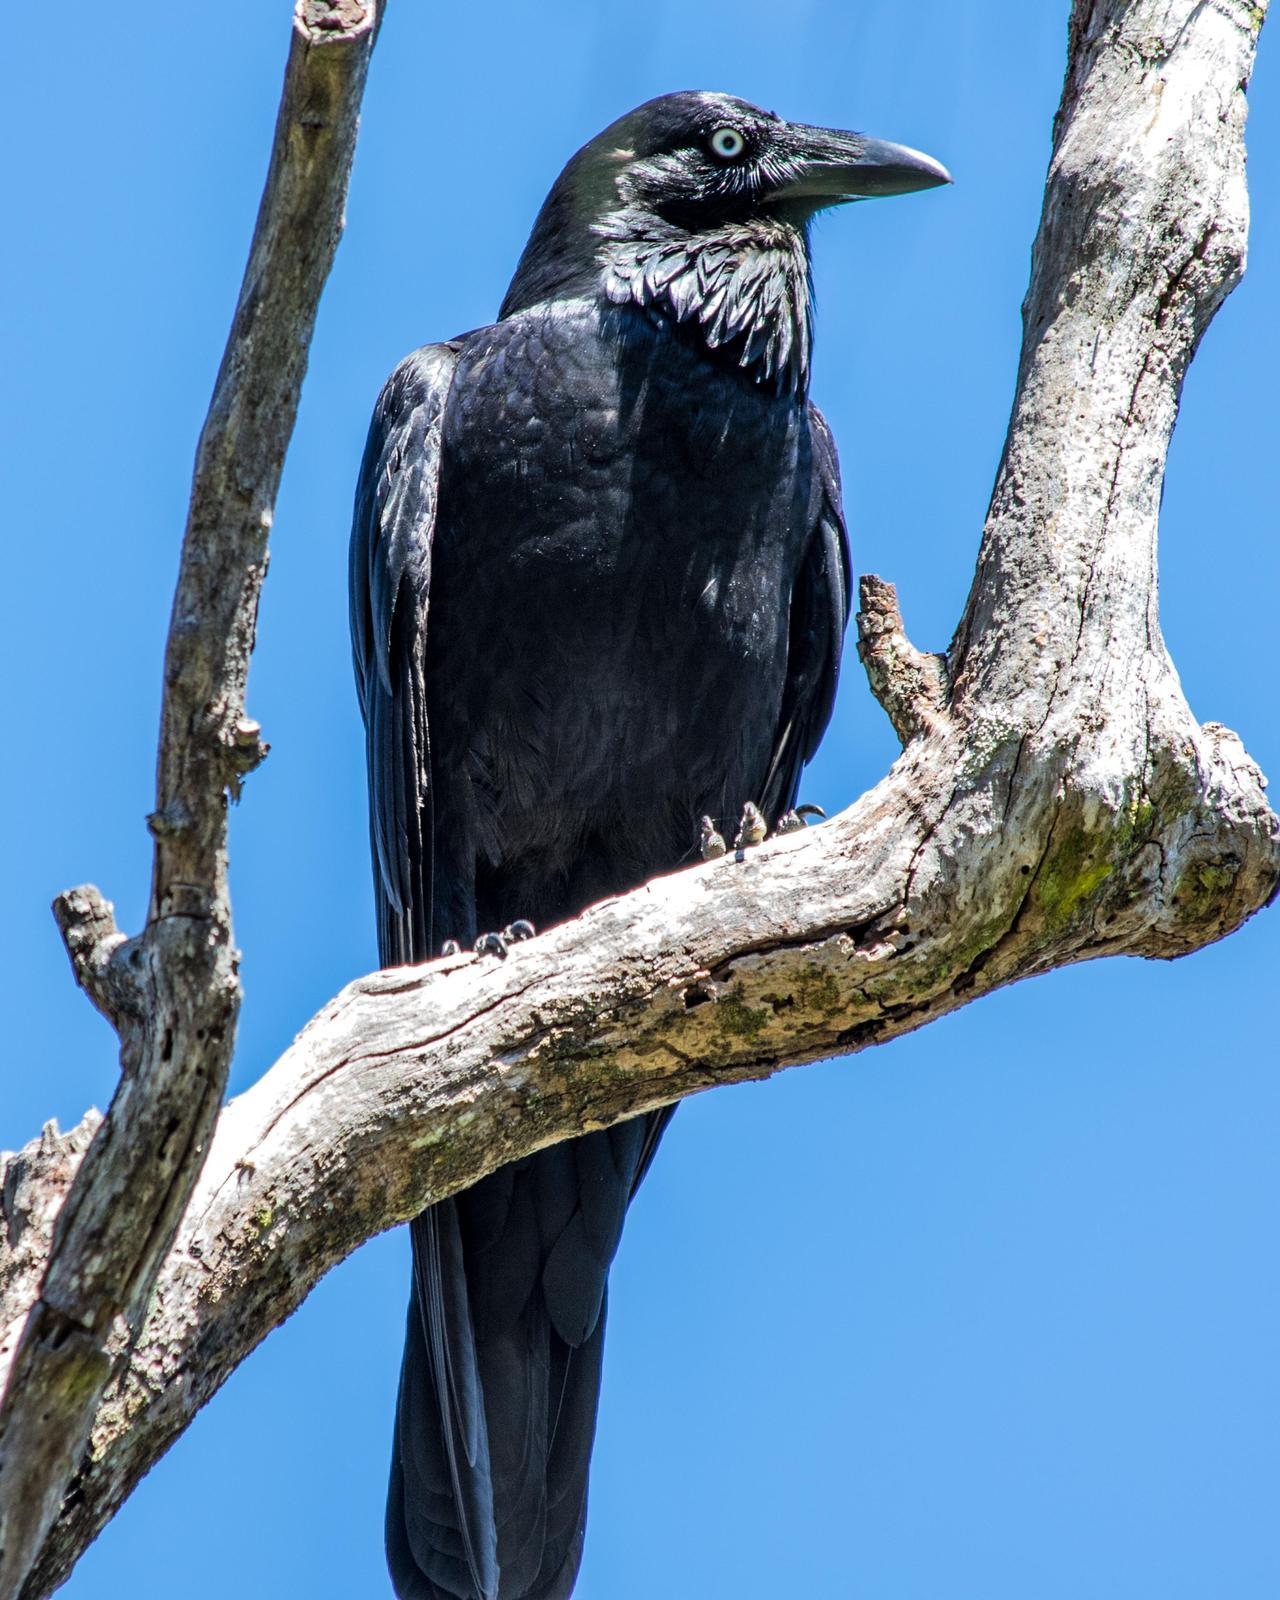 Australian Raven Photo by Mark Baldwin